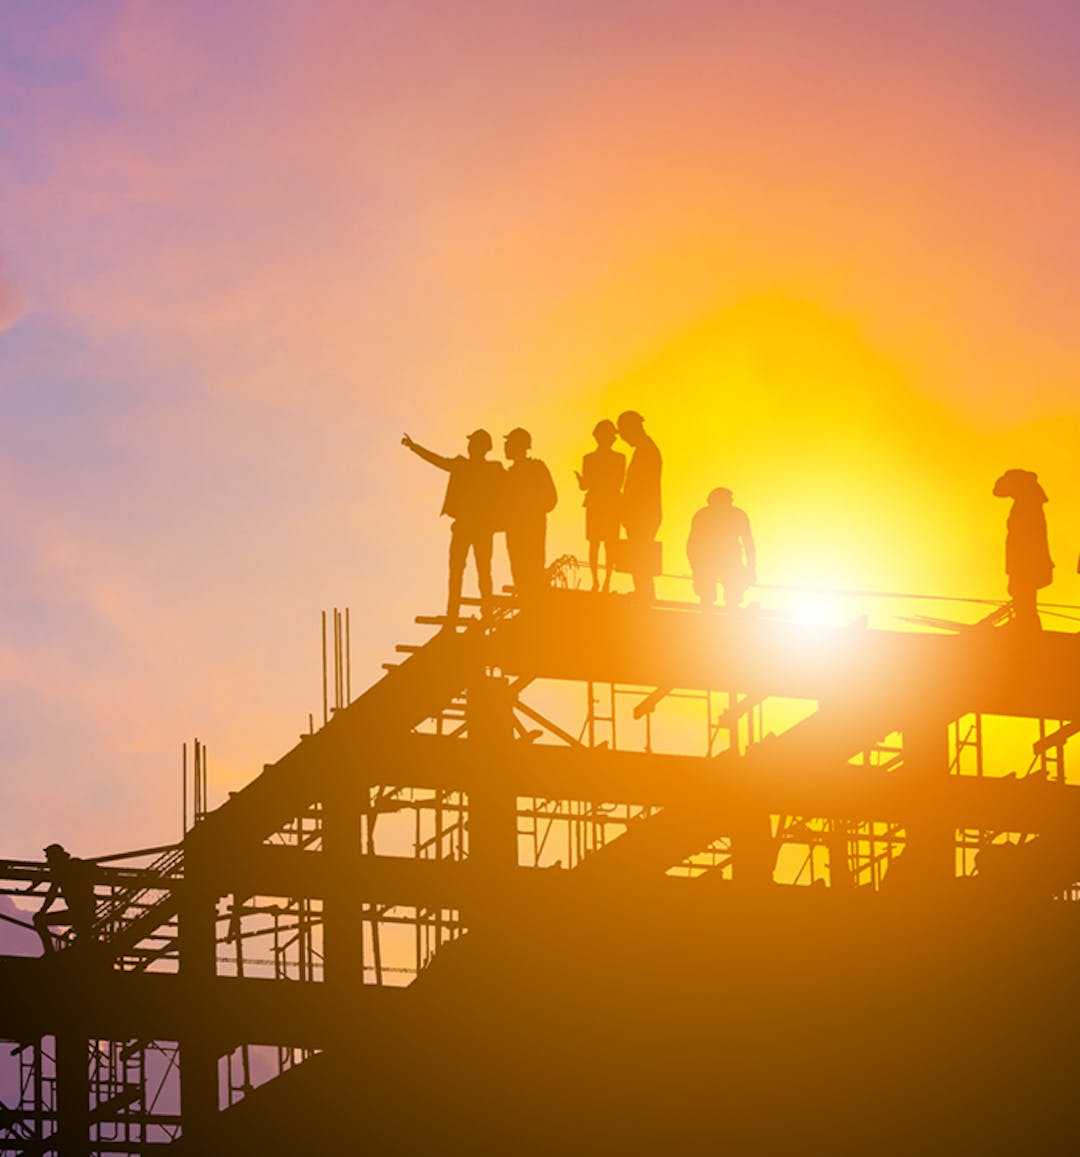 Construction workers standing on the top of a structure pointing into the sky during sunset.